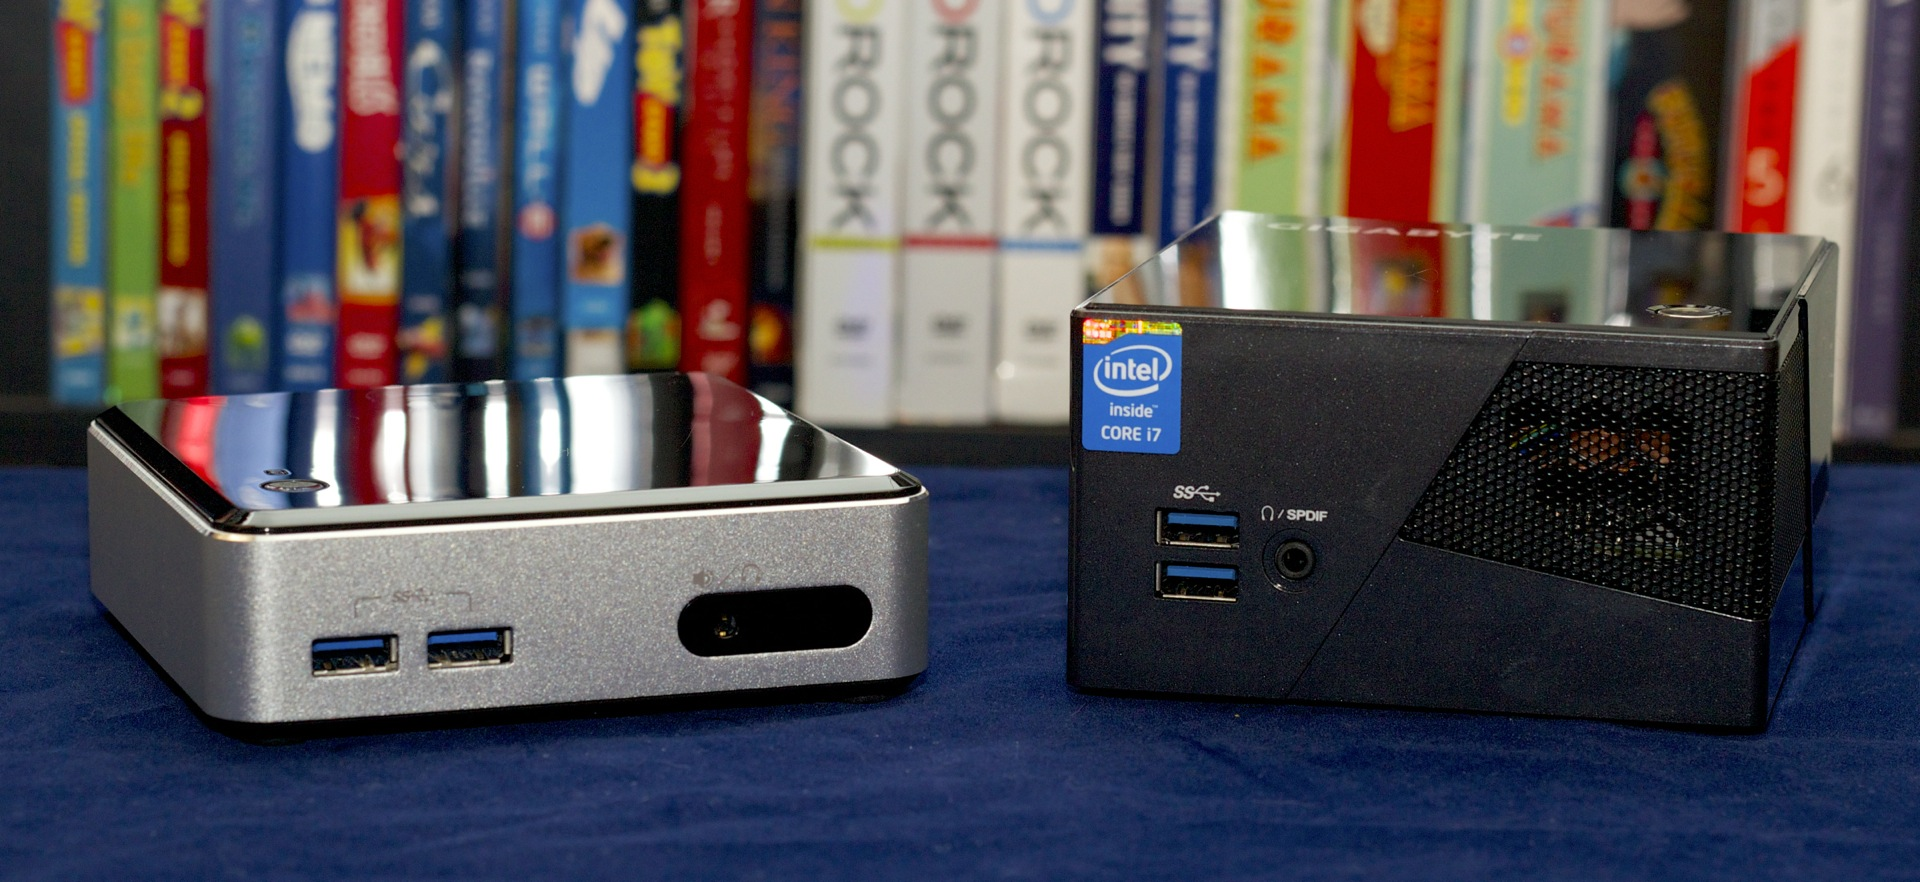 The Brix Pro and the NUC have a similar footprint, but the Brix is taller.